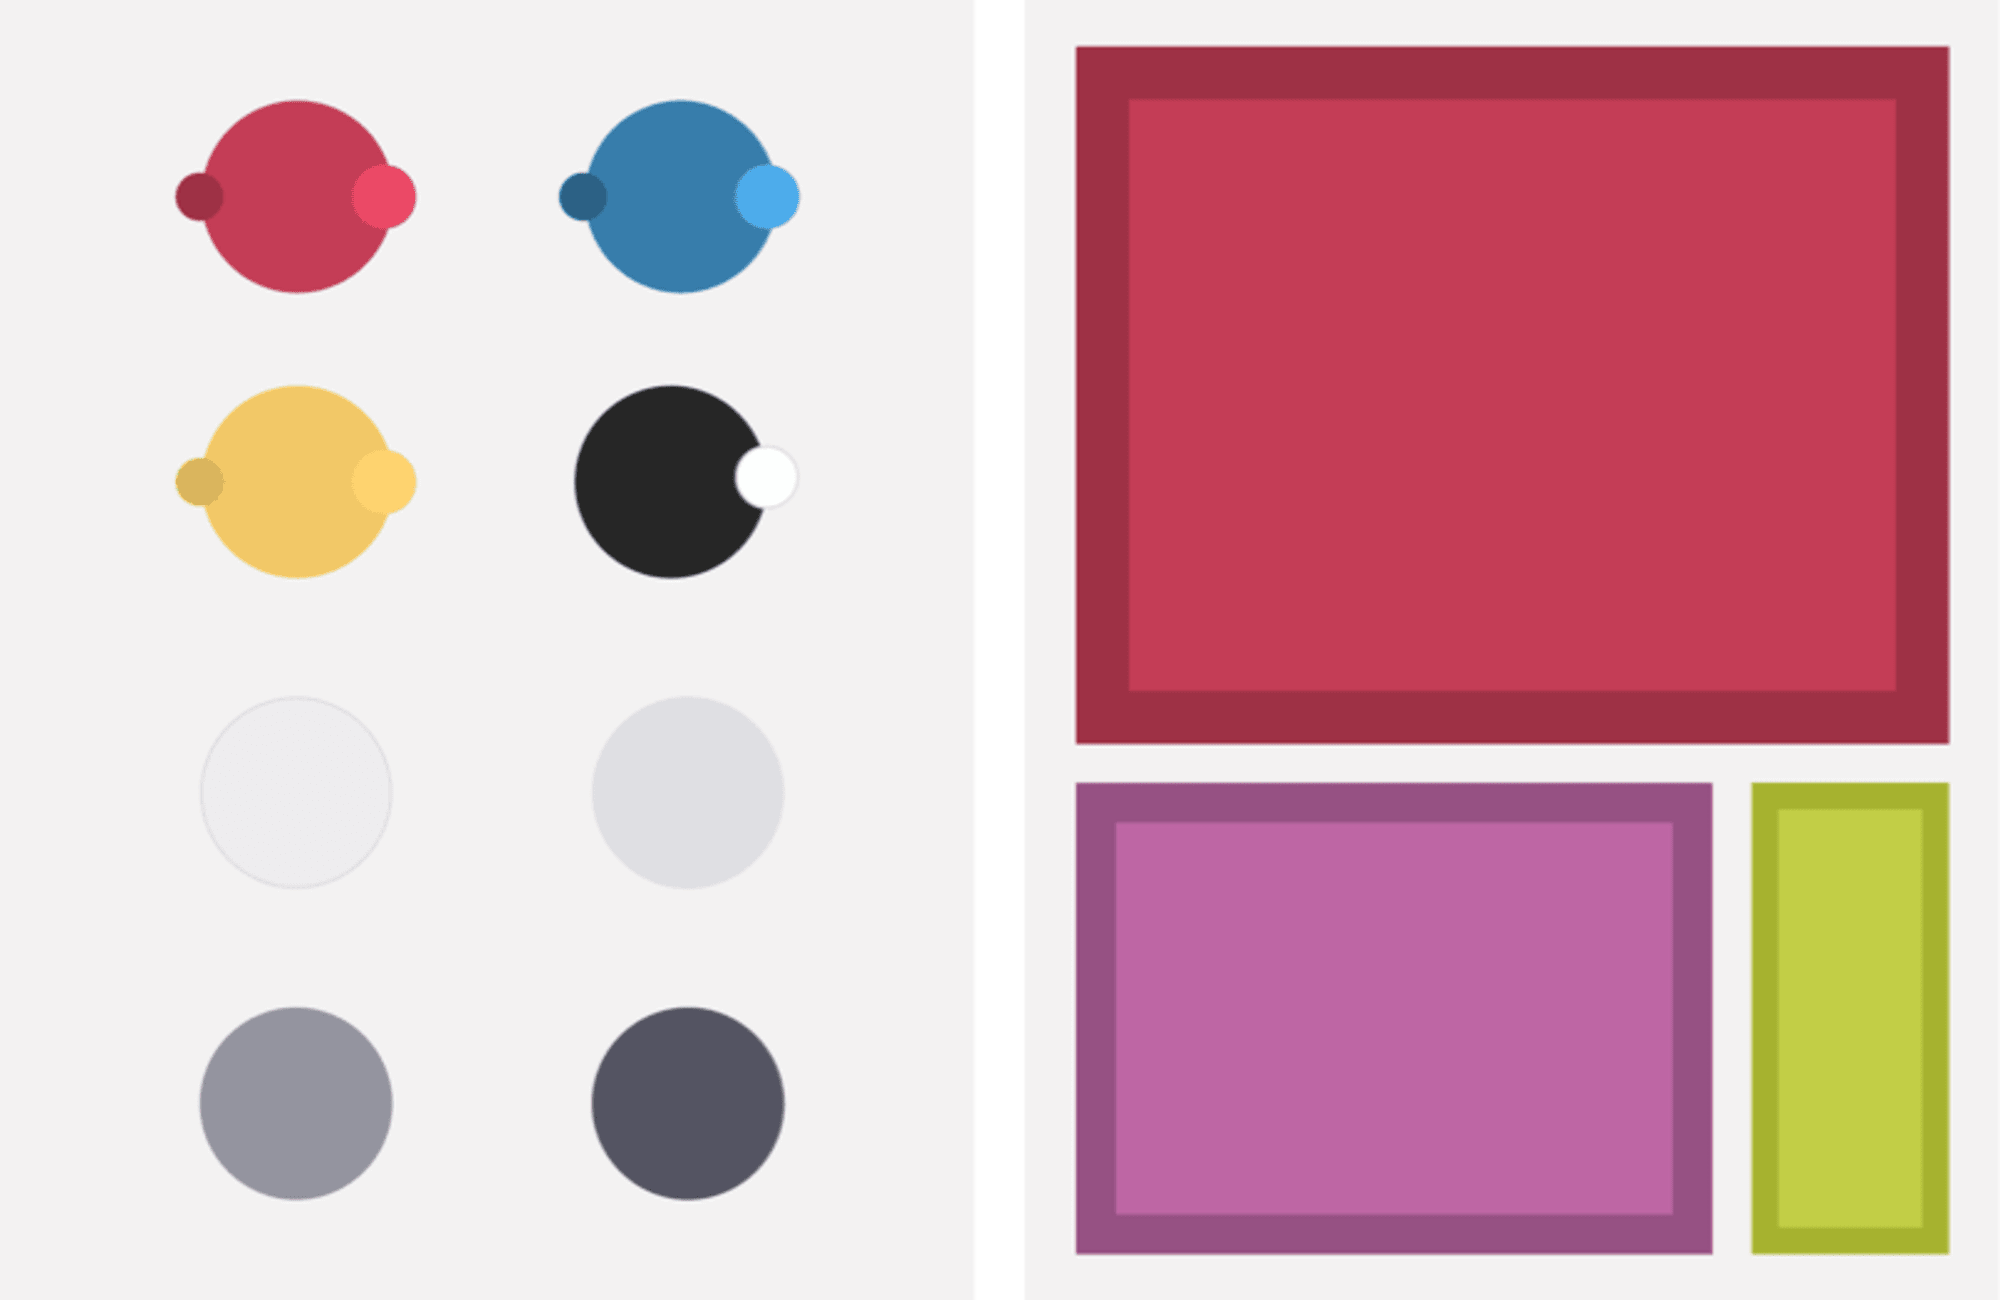 Left: My color palette. Right: Demonstrating percentage use.